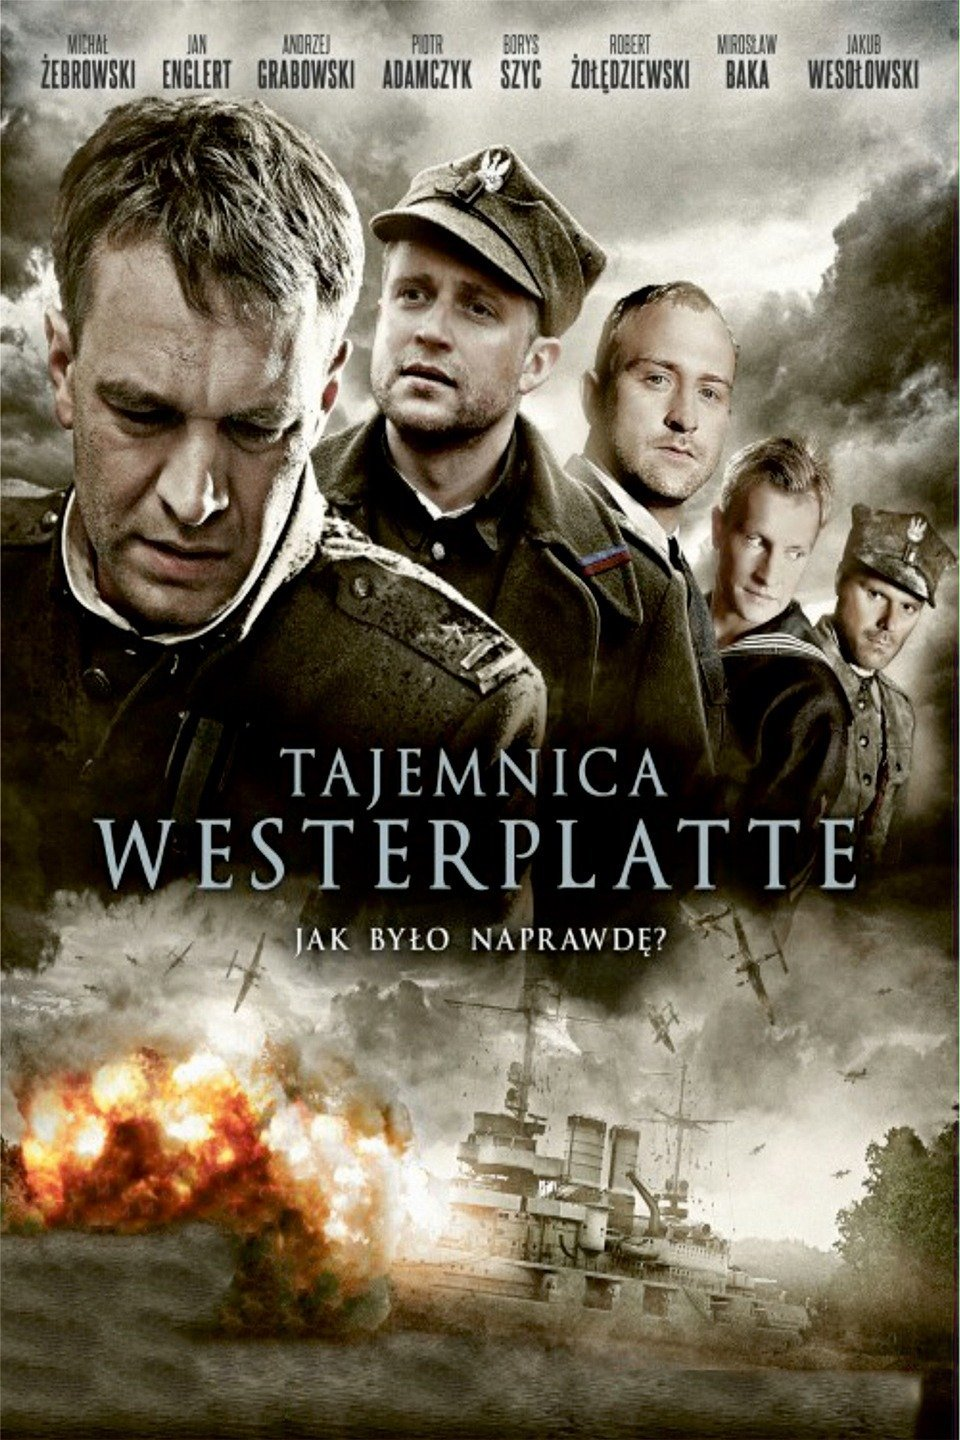 1939 Battle of Westerplatte-Tajemnica Westerplatte